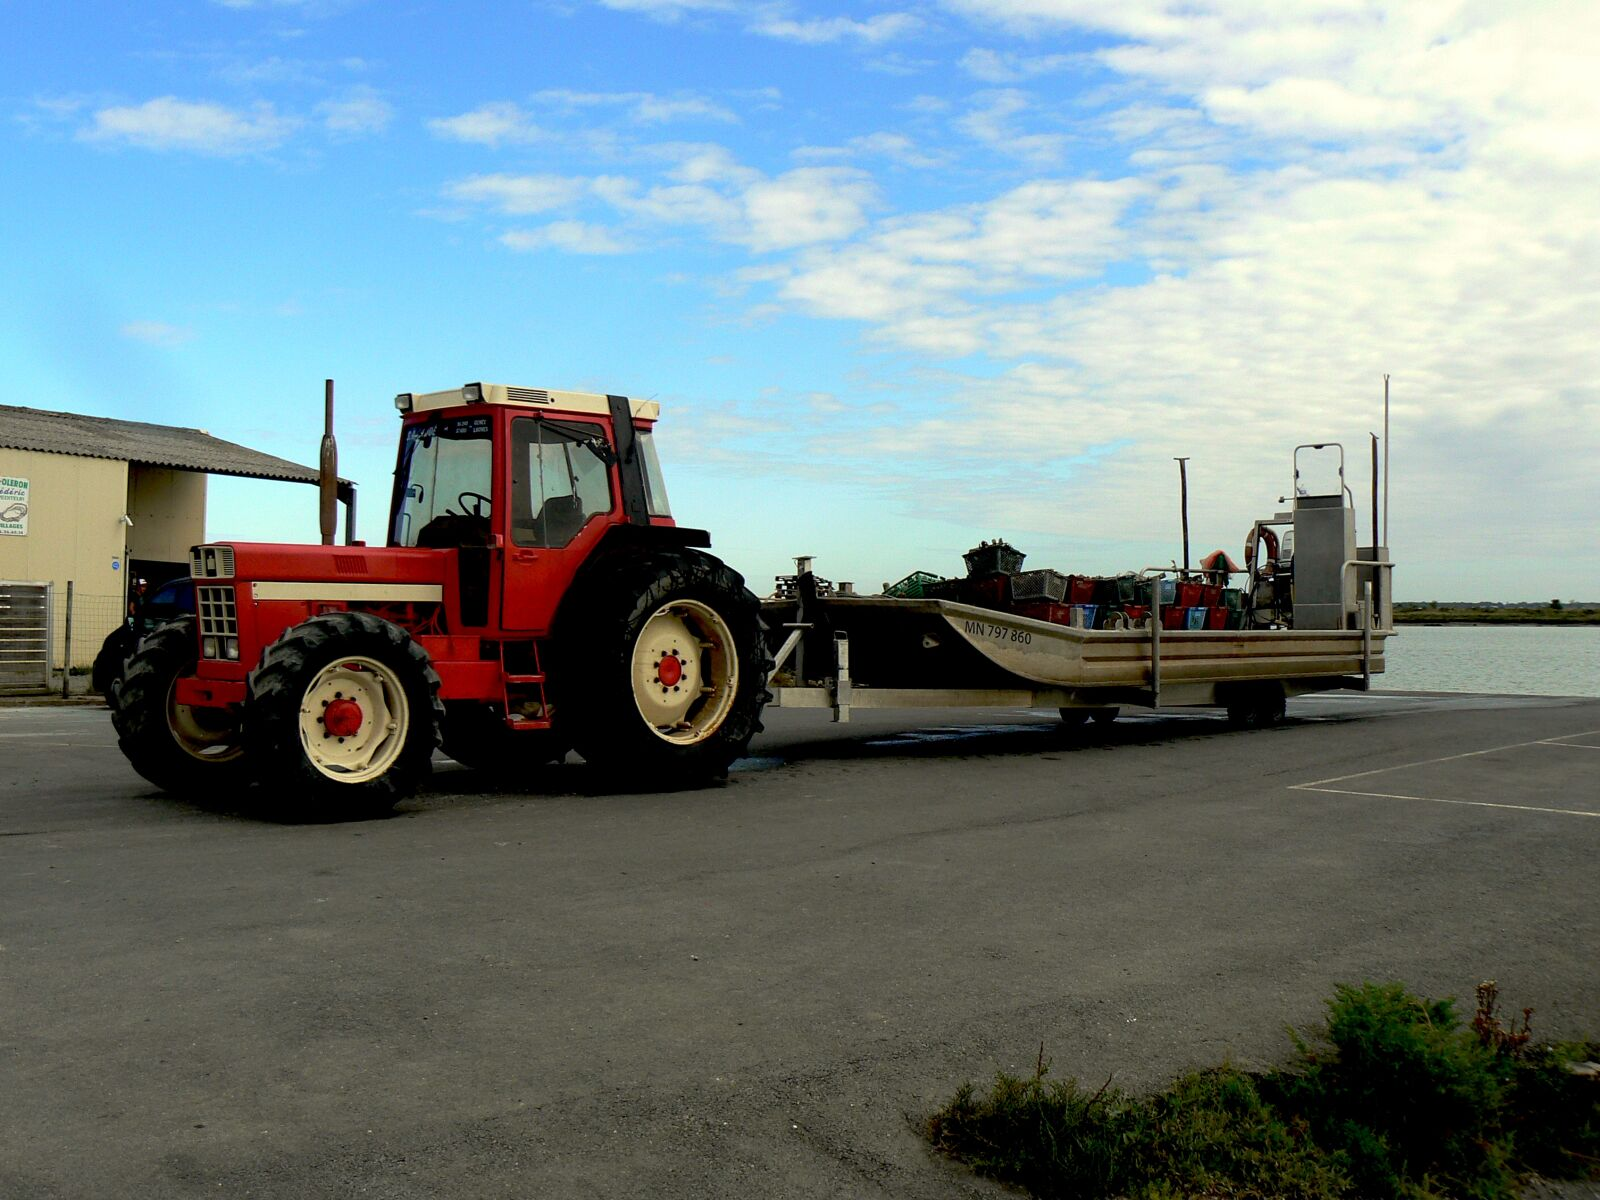 """Panasonic DMC-FZ7 sample photo. """"Tractor, oyster, oysters"""" photography"""